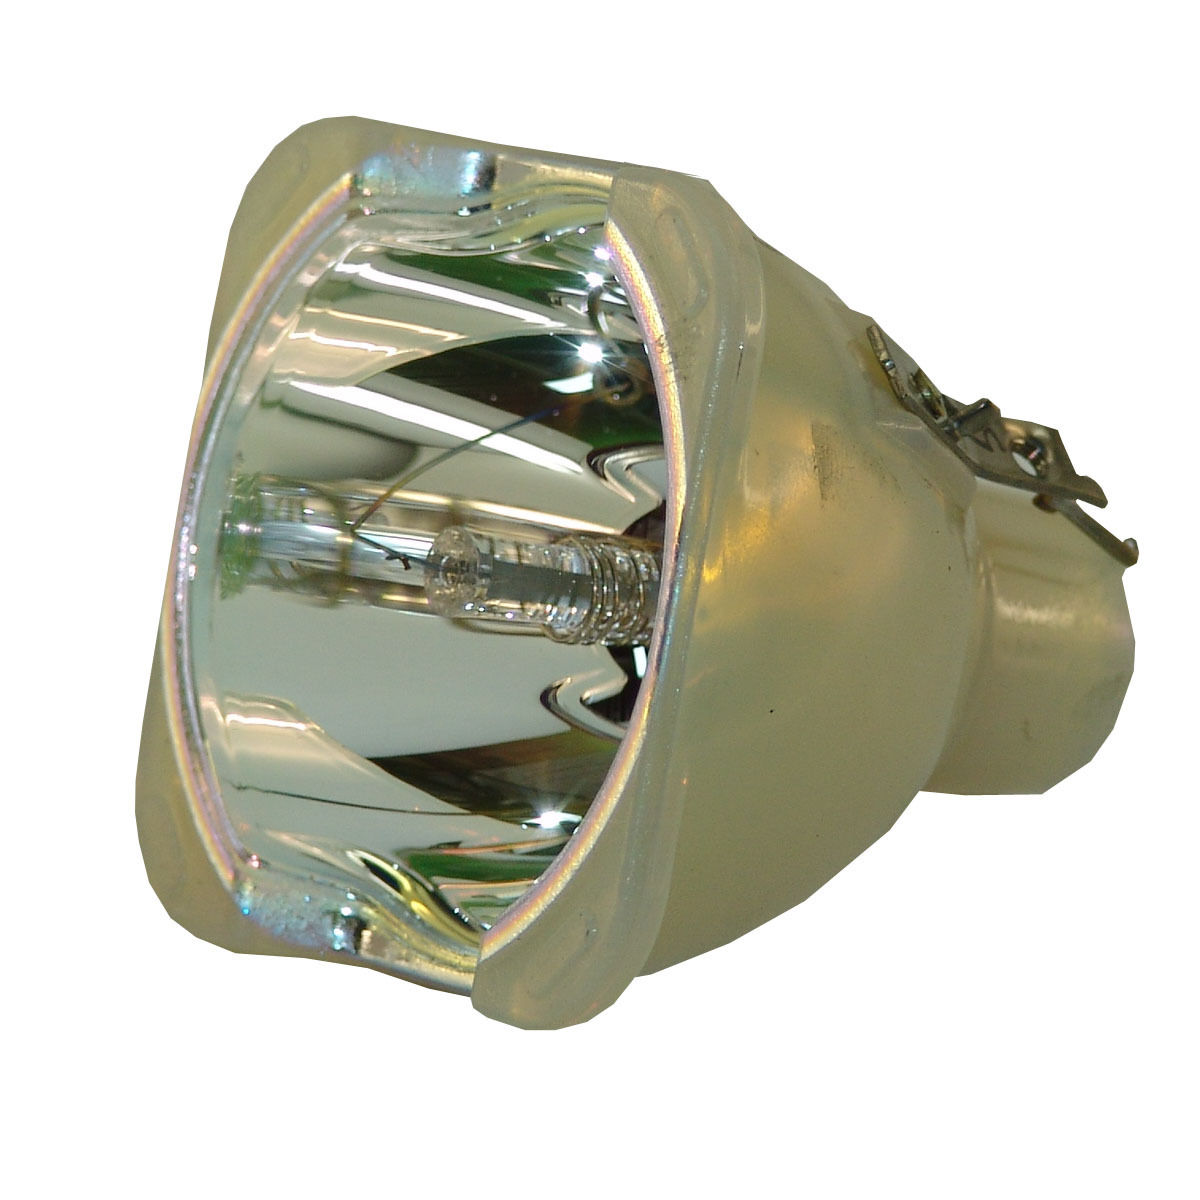 Compatible Bare Bulb 5J.J2G01.001 for BENQ PB8253 Projector Lamp Bulb without housing replacement compatible bare bulb 5j 08g01 001 lamp for benq mp730 projector